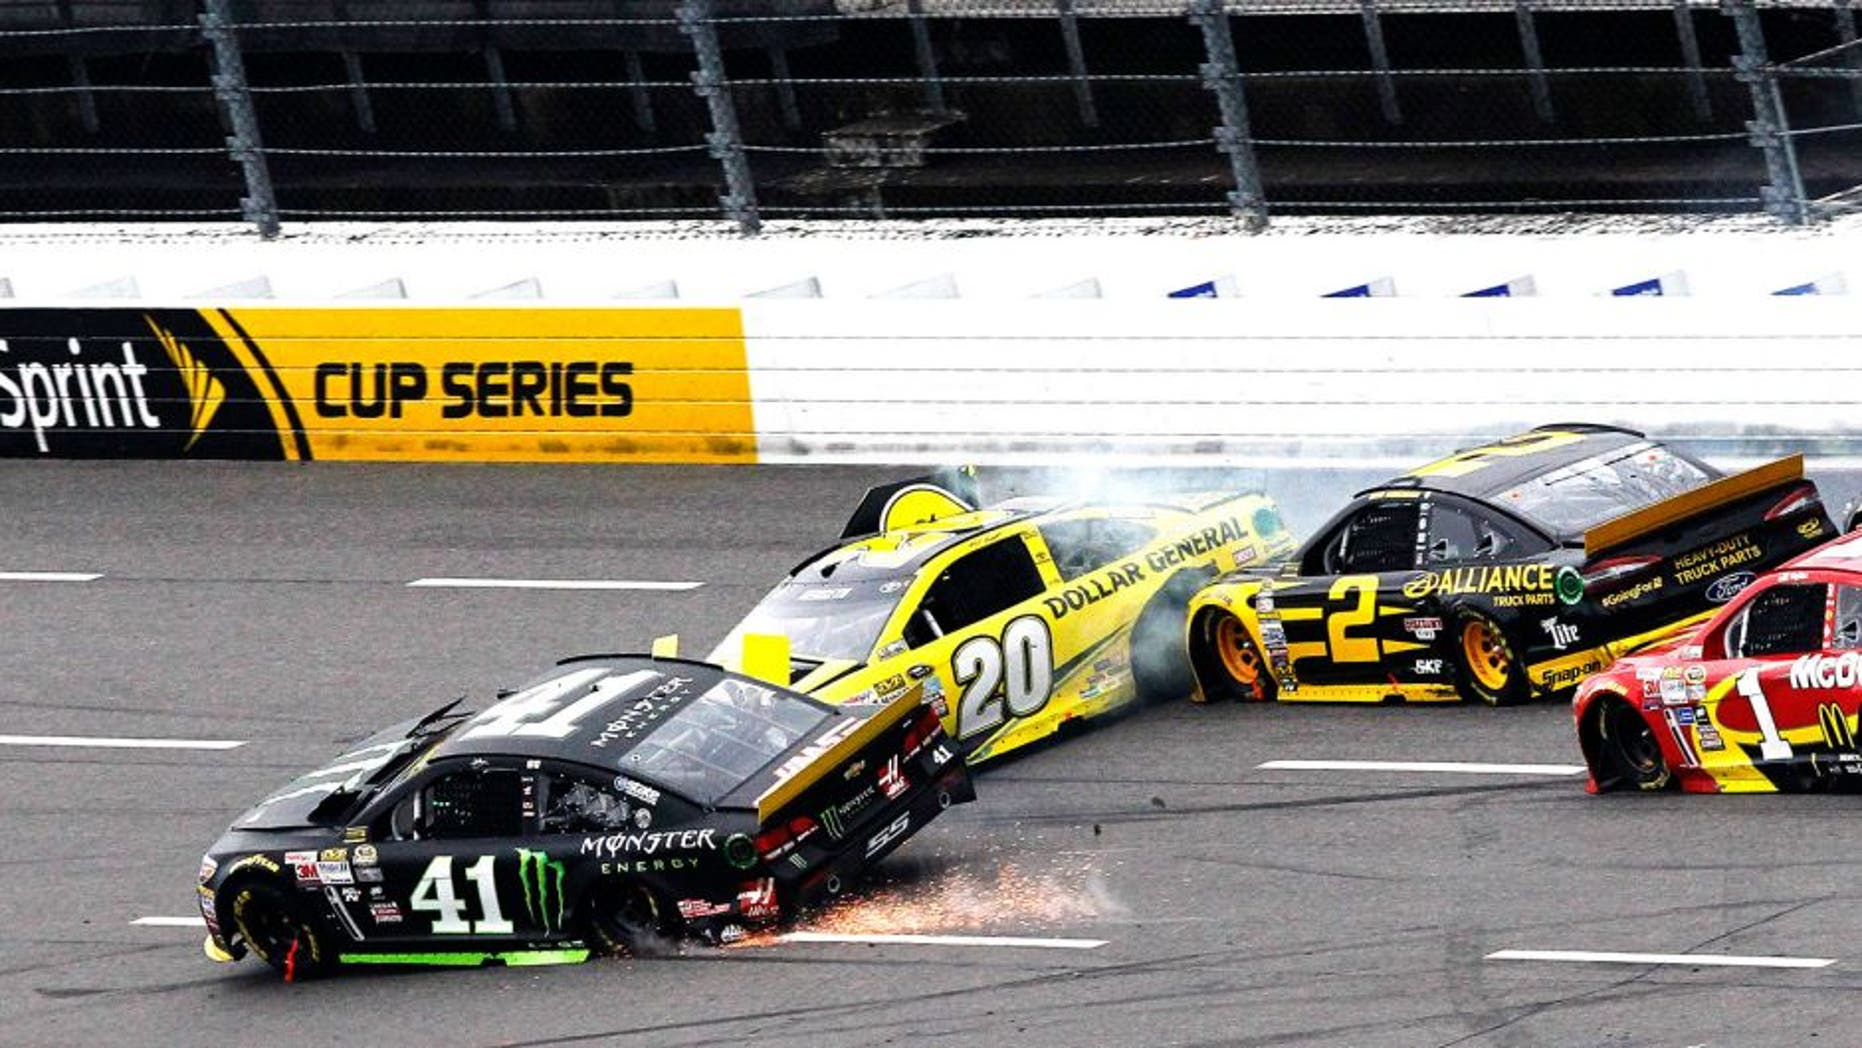 MARTINSVILLE, VA - NOVEMBER 01: Kurt Busch, driver of the #41 Monster Energy Chevrolet, Matt Kenseth, driver of the #20 Dollar General Toyota, Brad Keselowski, driver of the #2 Alliance Truck Parts Ford, and Jamie McMurray, driver of the #1 McDonald's Chevrolet, are involved in an on-track incident during the NASCAR Sprint Cup Series Goody's Headache Relief Shot 500 at Martinsville Speedway on November 1, 2015 in Martinsville, Virginia. (Photo by Brian Lawdermilk/NASCAR via Getty Images)